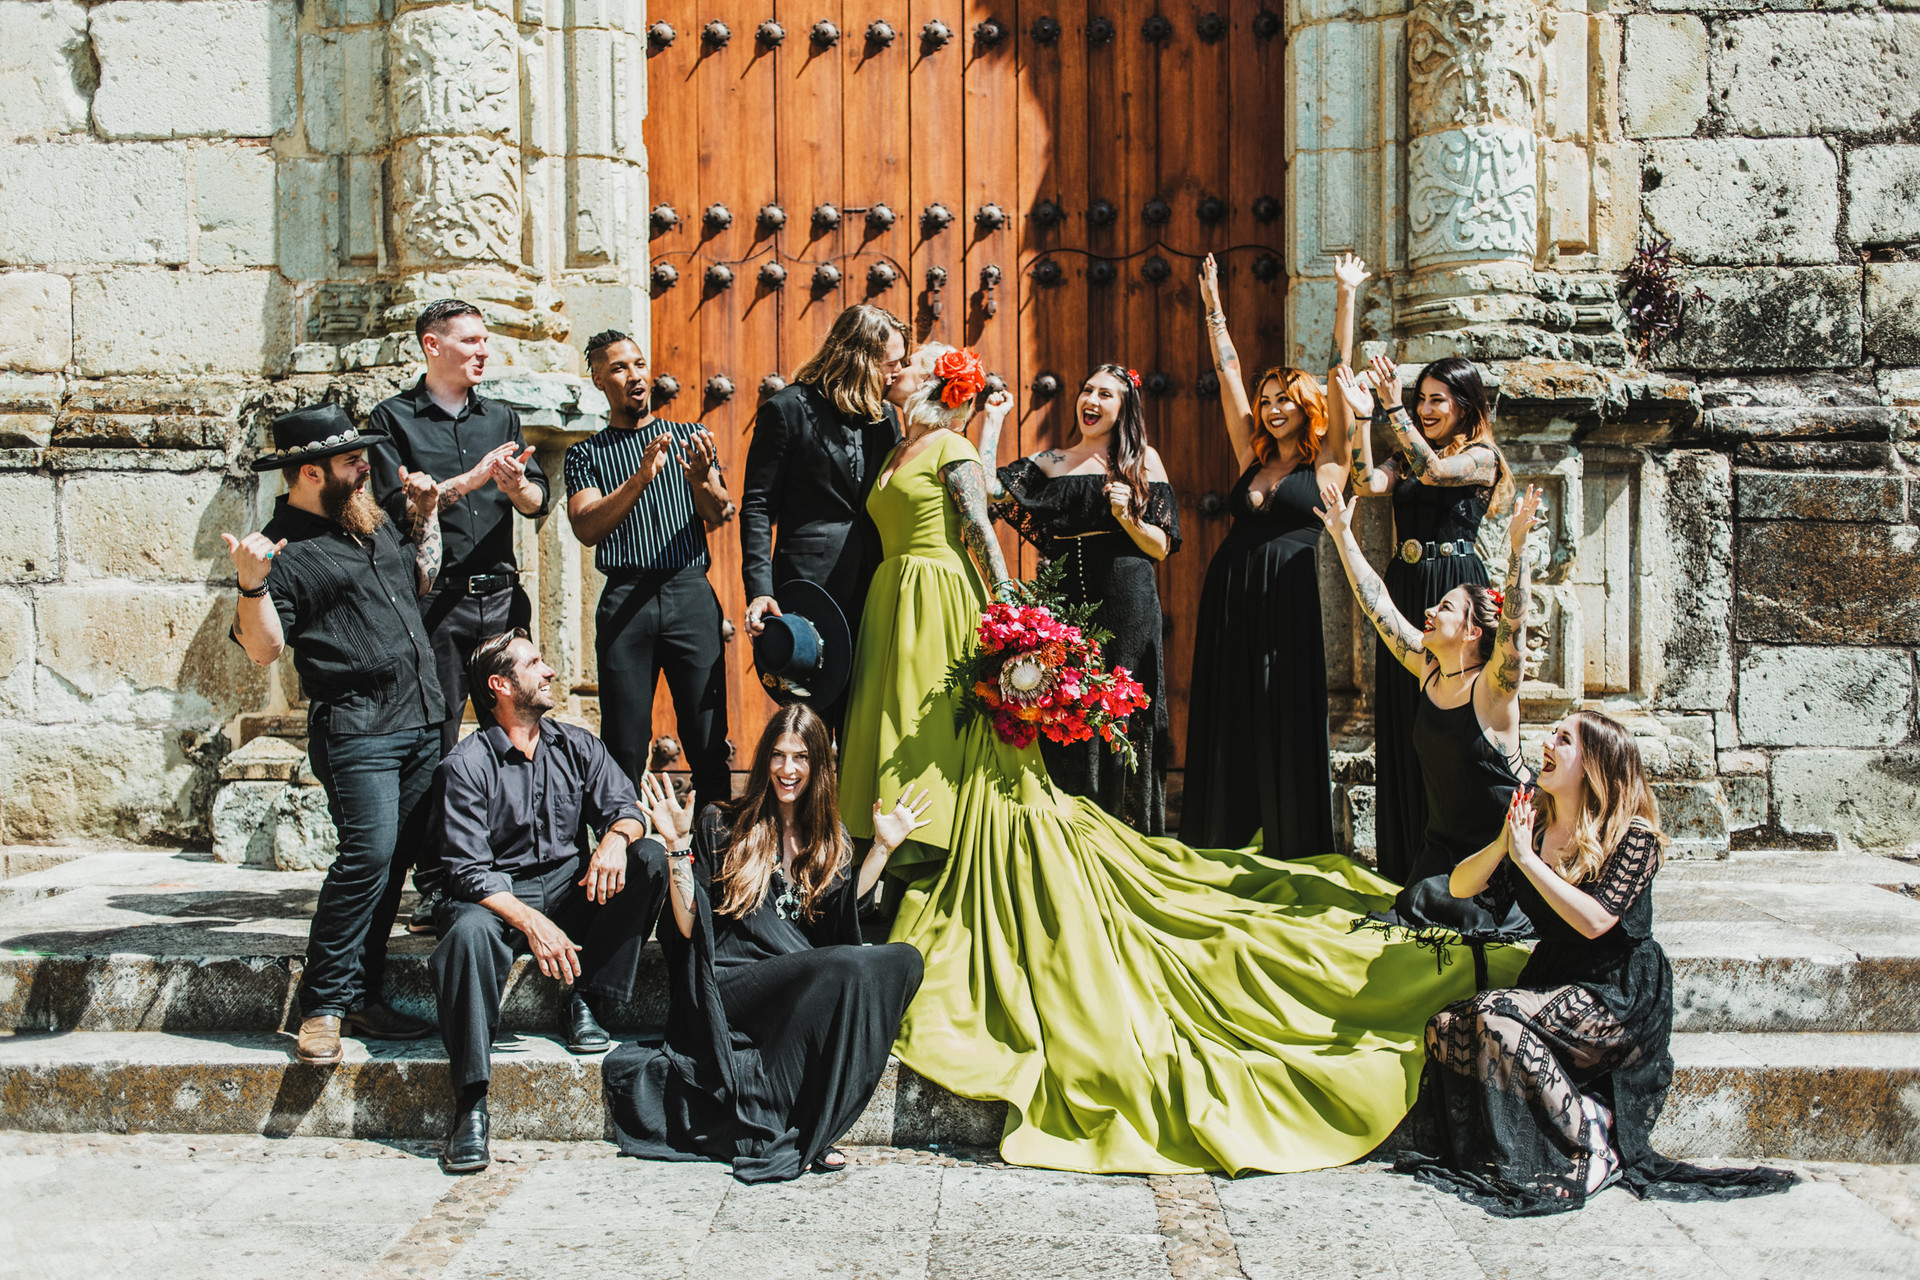 bridal party wearing all black fun group photo